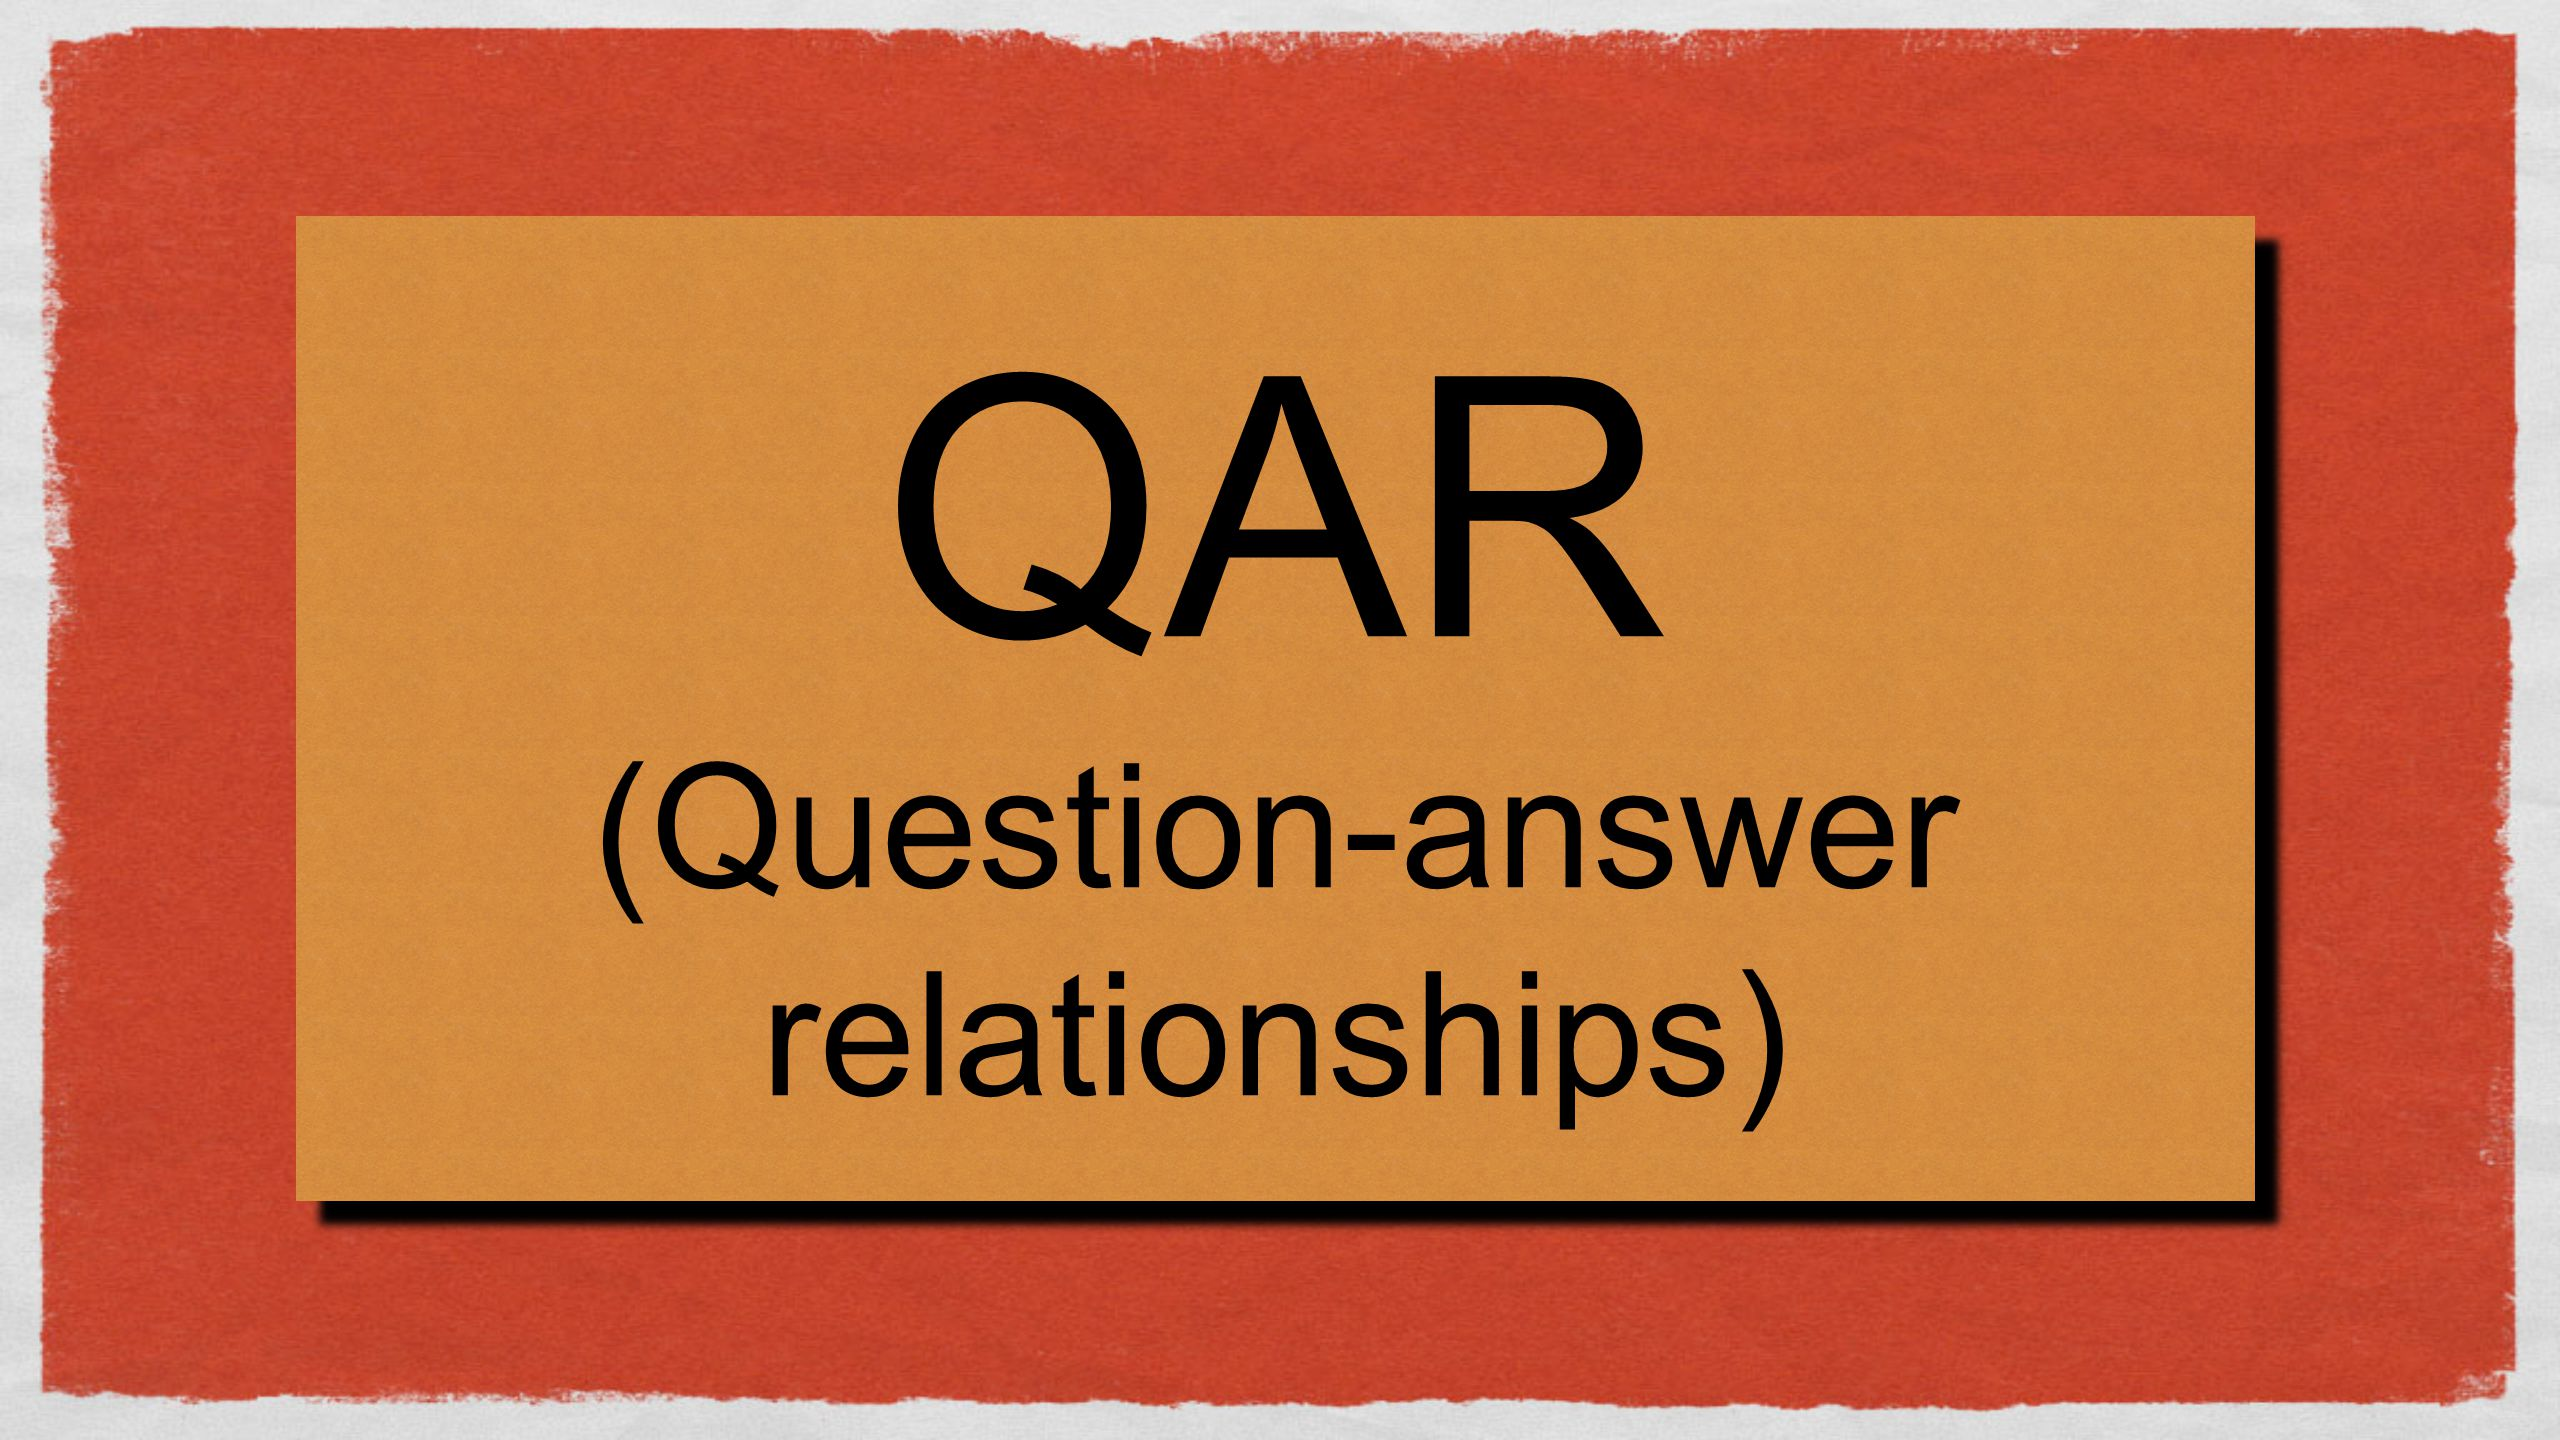 QAR (Question-answer relationships)